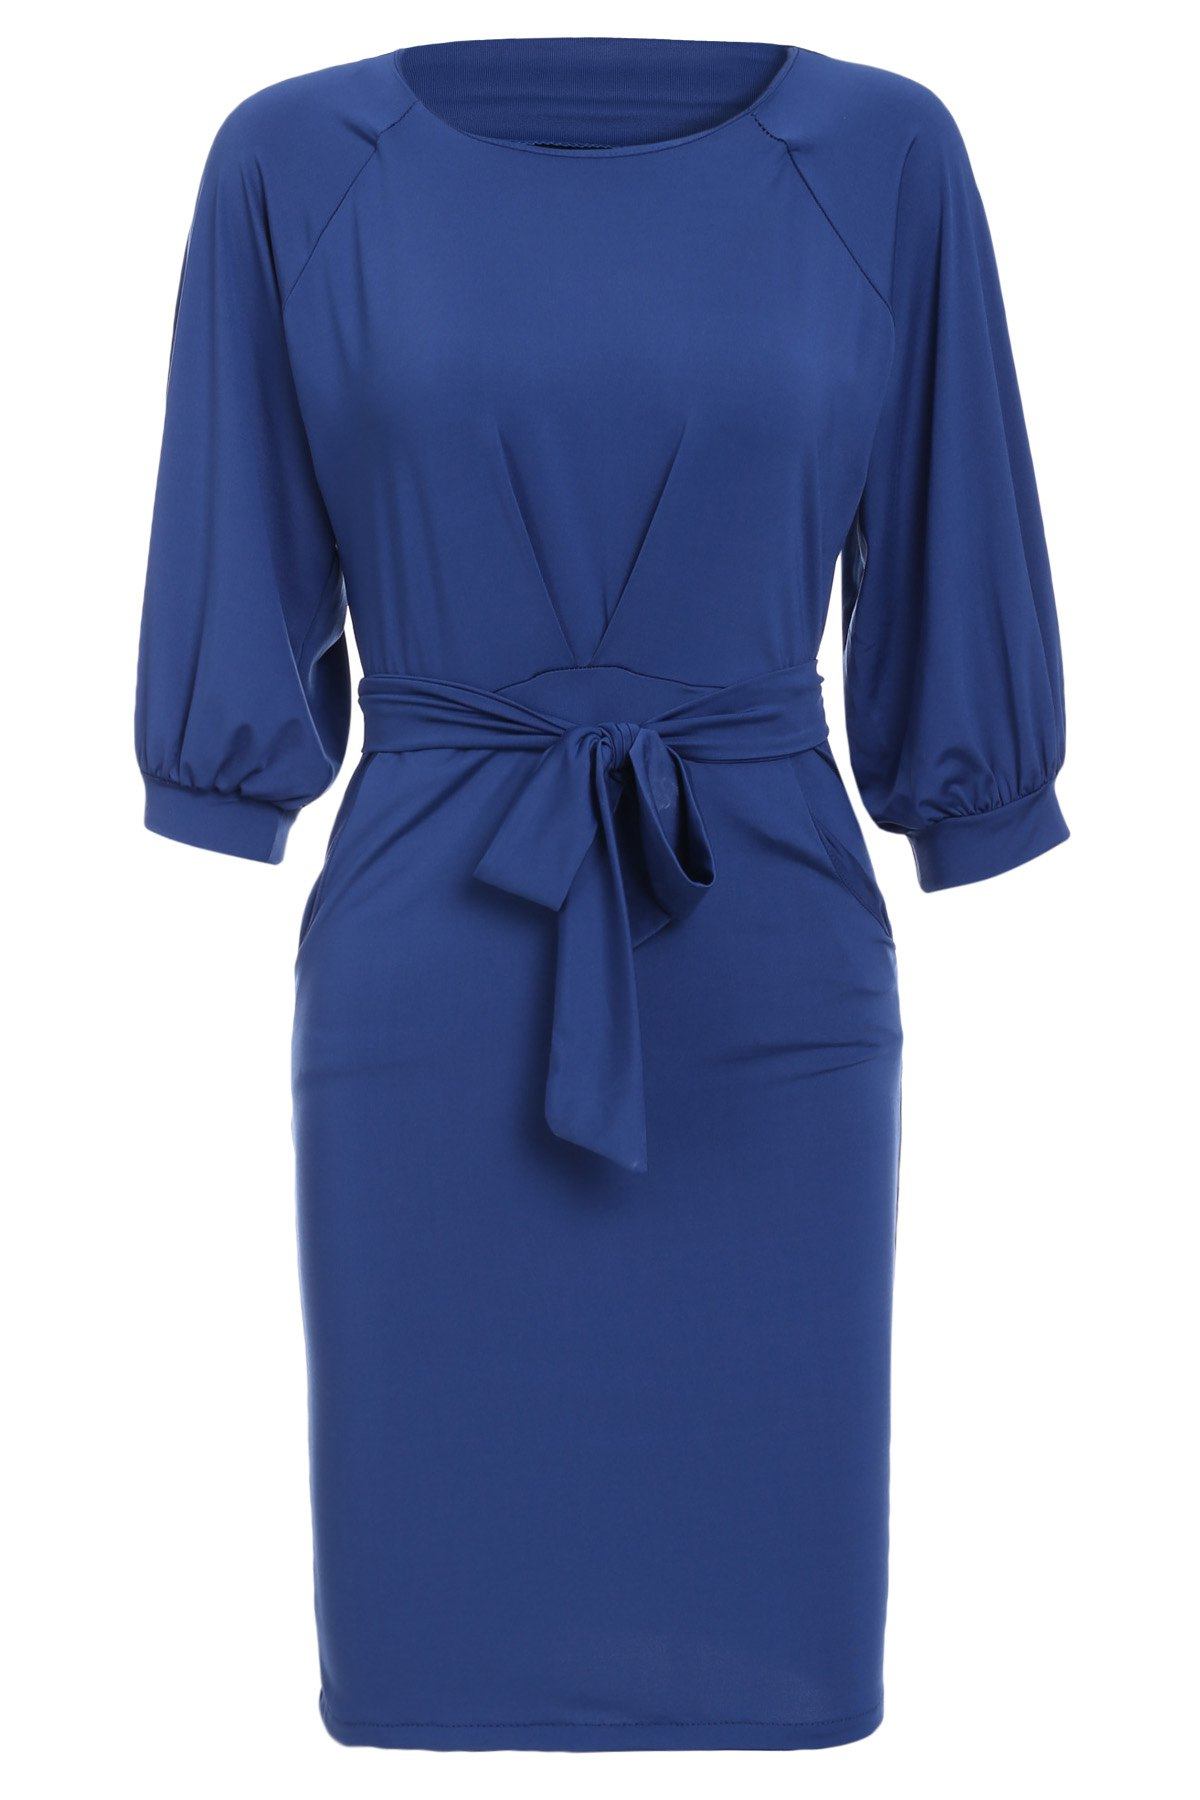 Vintage Solid Color Puff Sleeve Waist Lace-Up Dress For Women - DEEP BLUE S